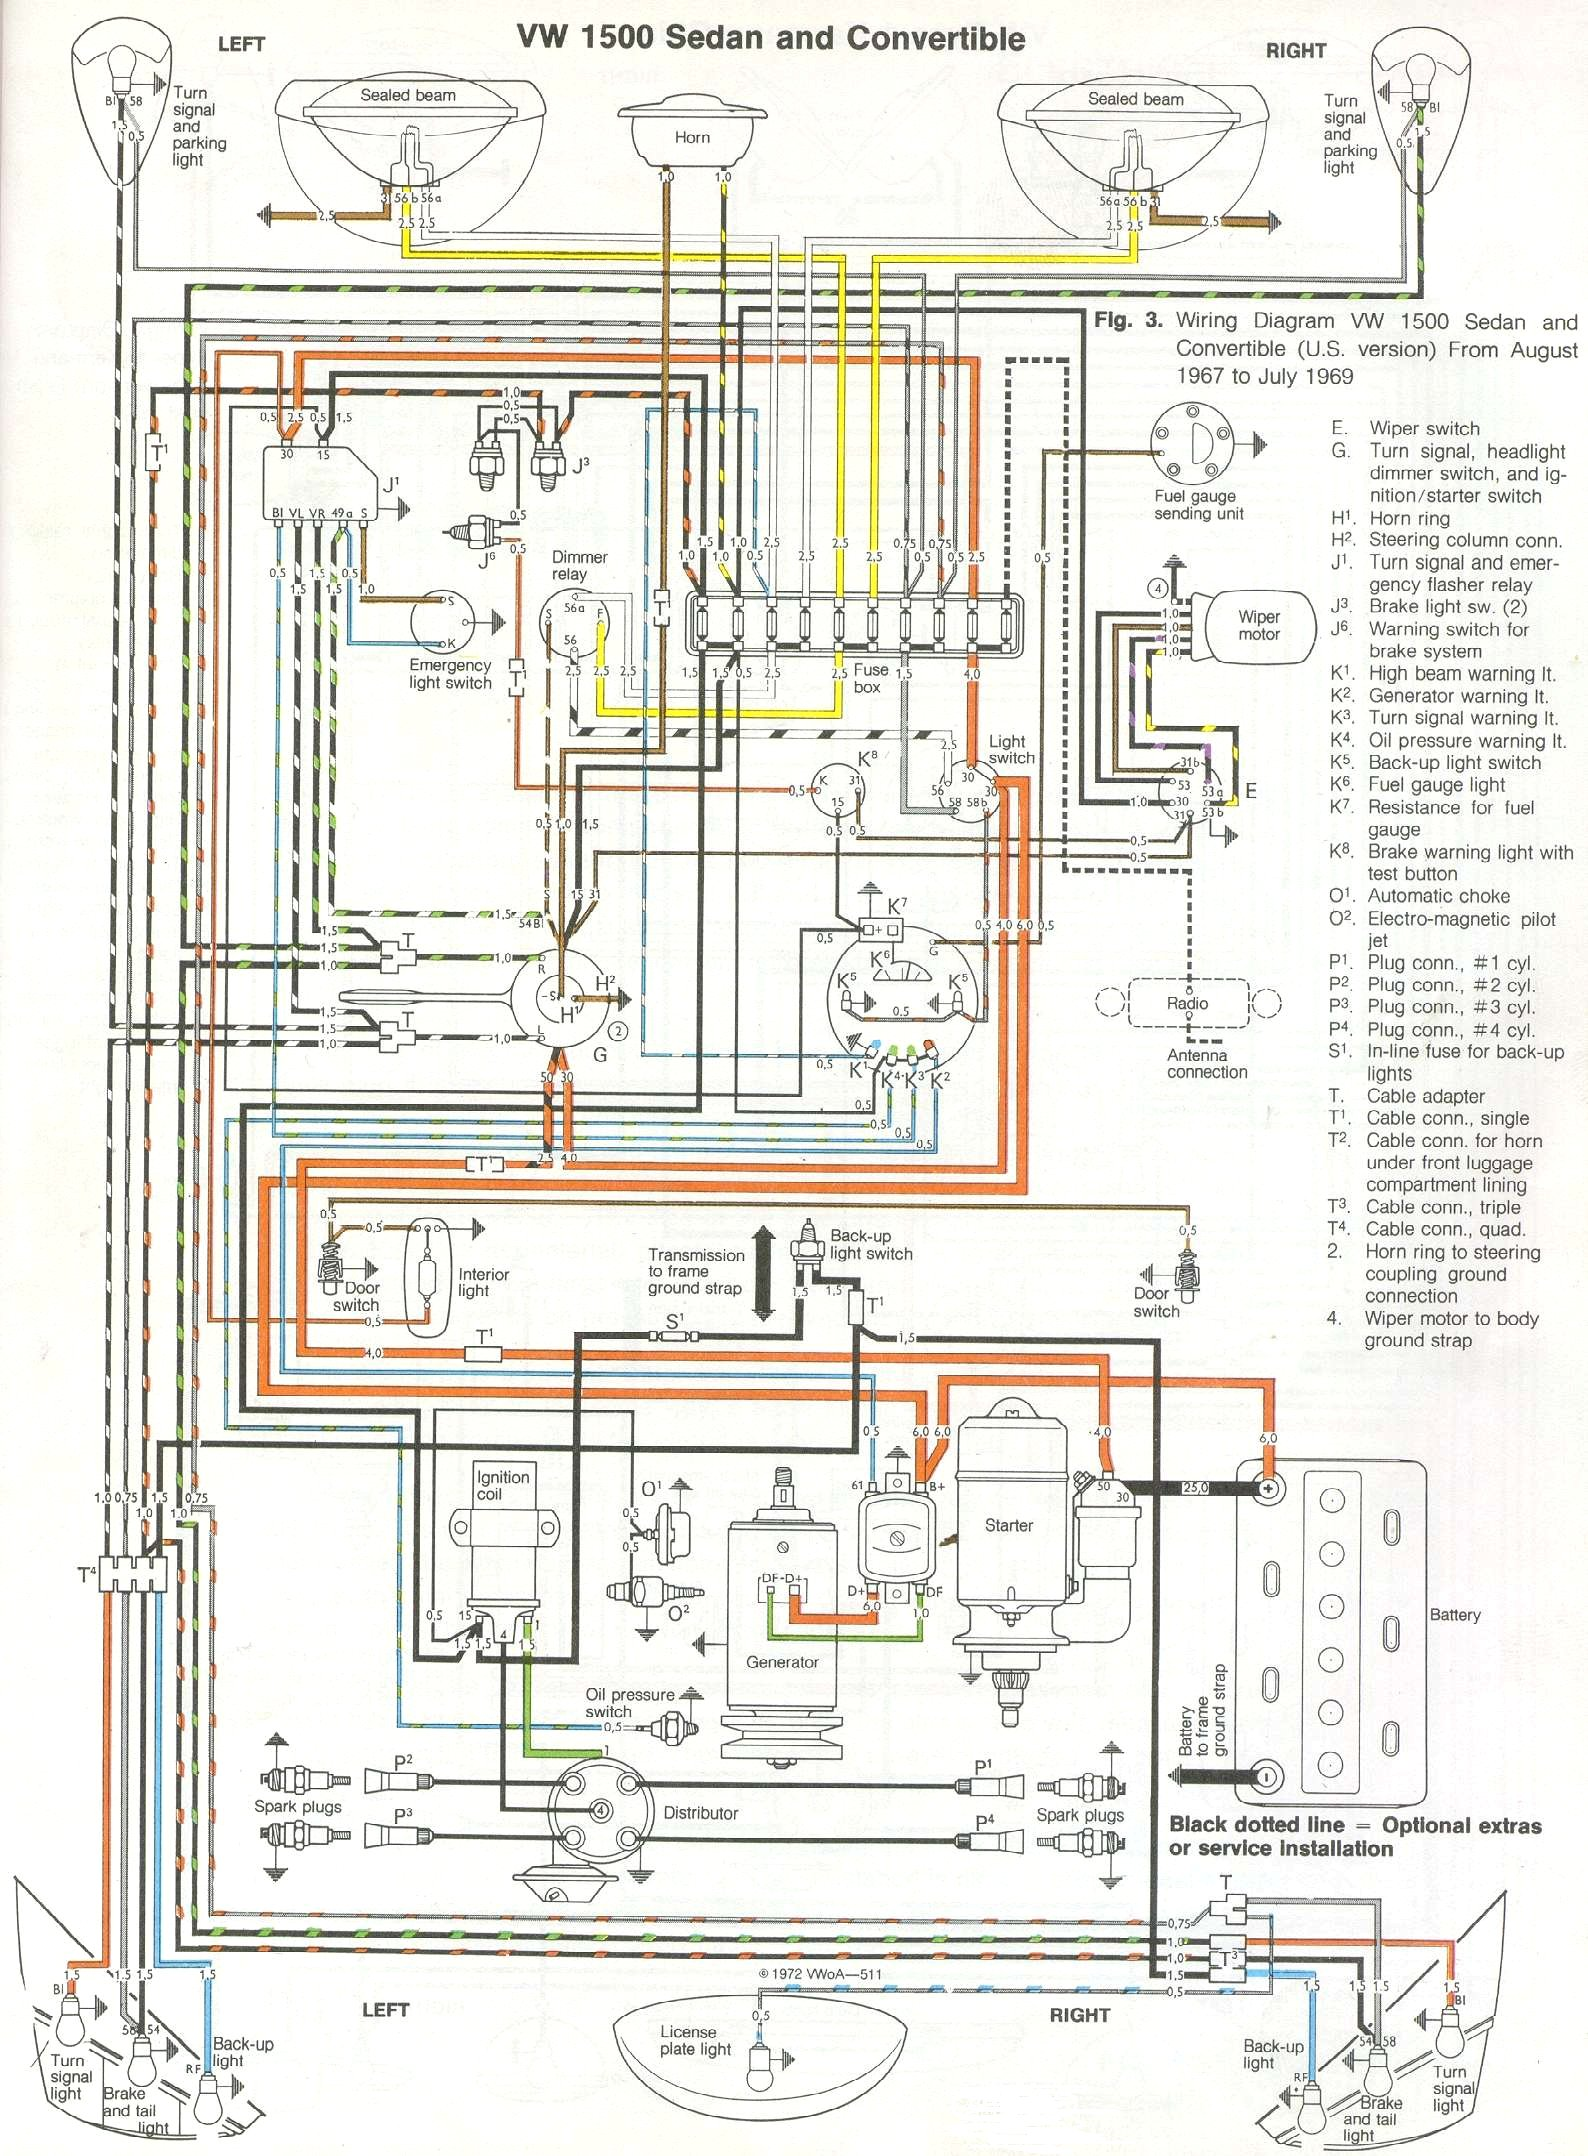 bug_6869 1969 71 beetle wiring diagram thegoldenbug com 1973 vw super beetle wiring harness at creativeand.co